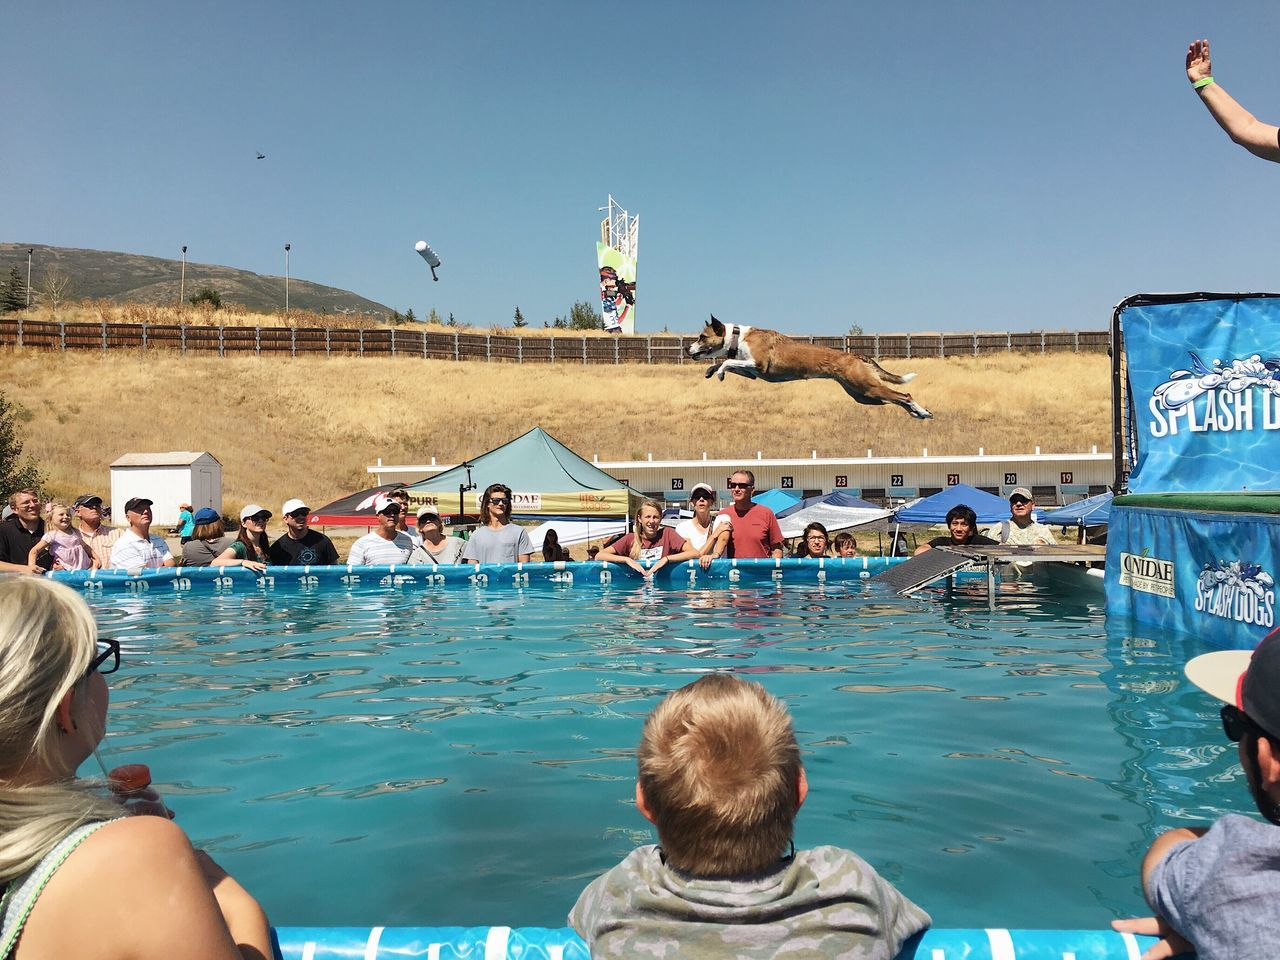 water, group of people, real people, nature, sky, lifestyles, day, architecture, men, built structure, large group of people, clear sky, building exterior, leisure activity, adult, crowd, women, mid-air, outdoors, swimming pool